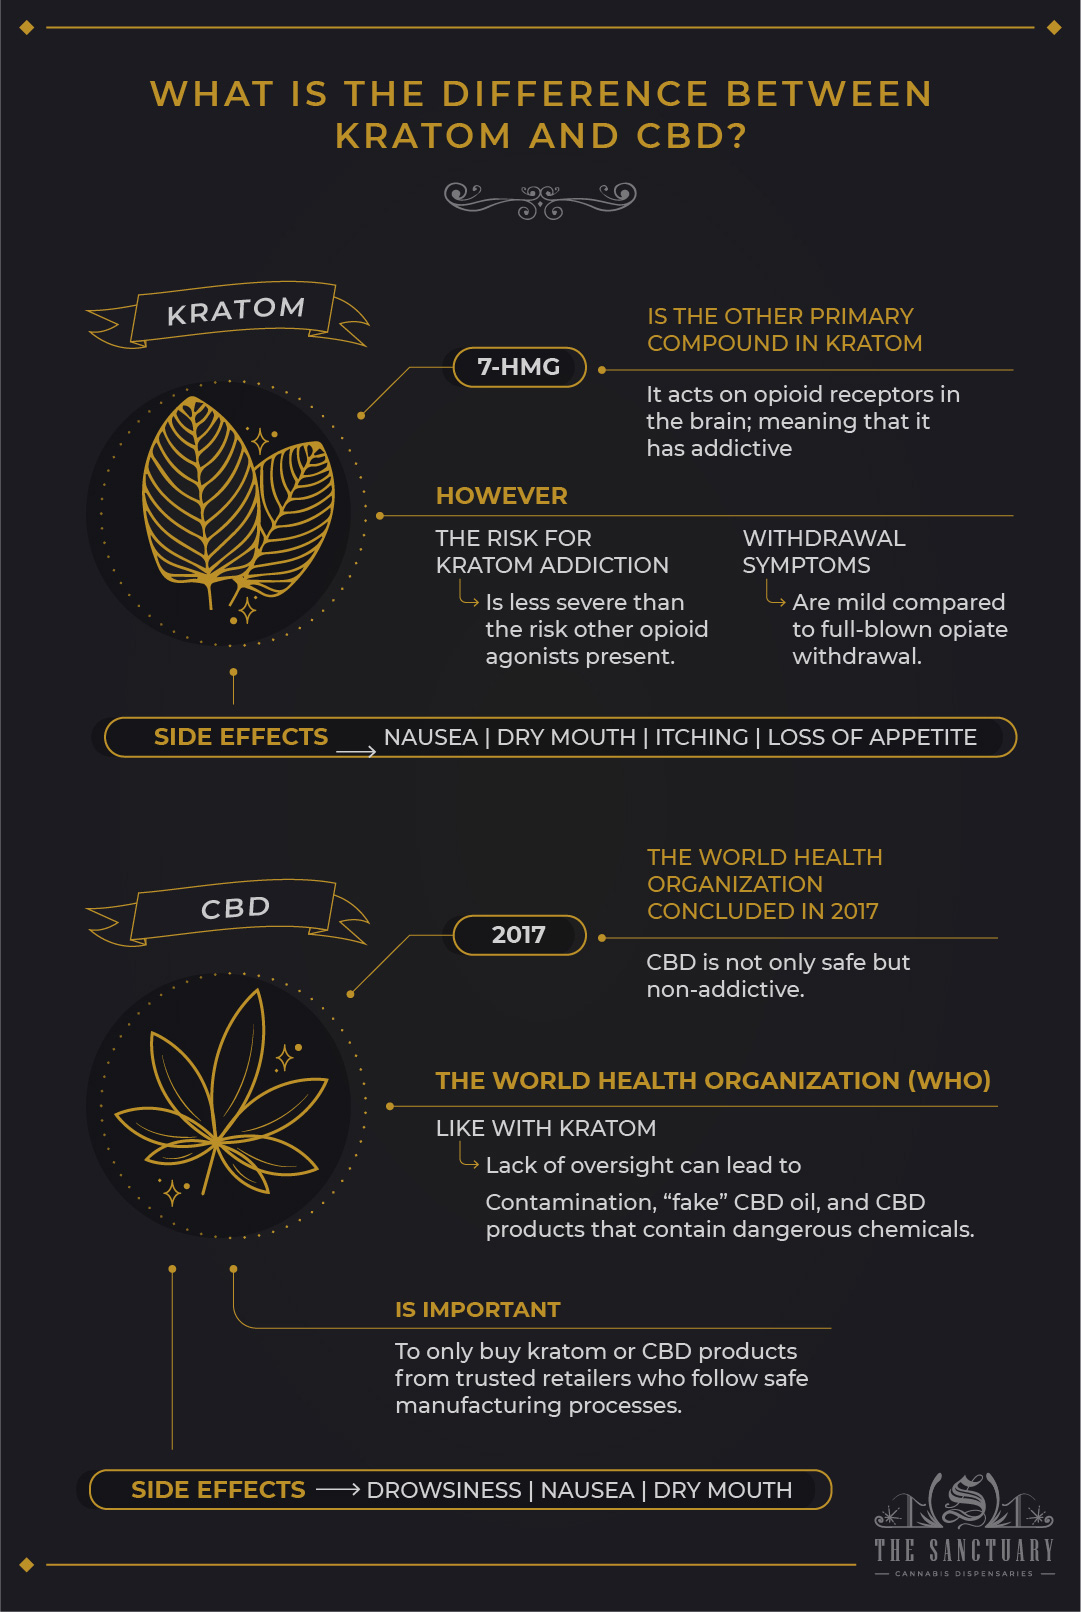 What is the difference between kratom and CBD?